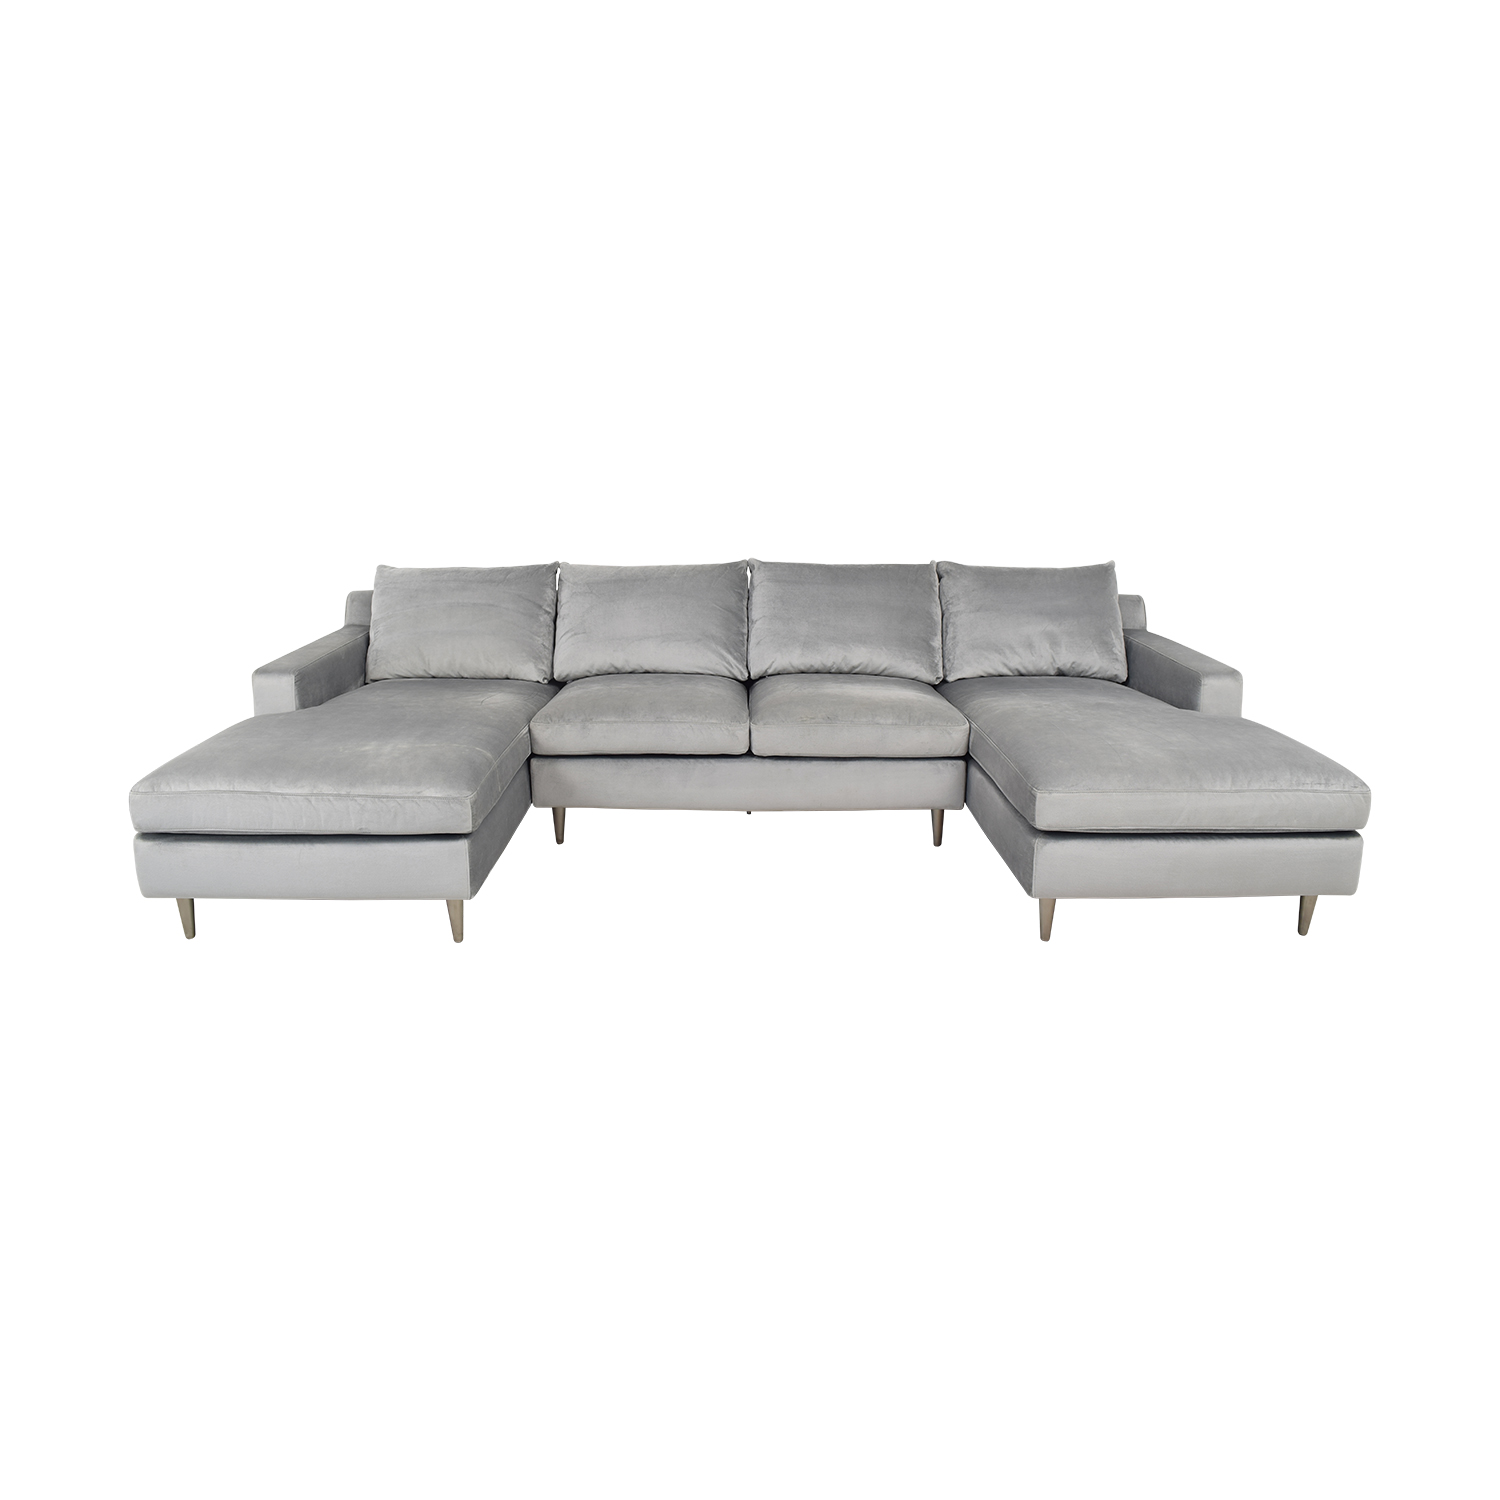 Interior Define Interior Define Sloan Suede U-Sectional Sofa coupon